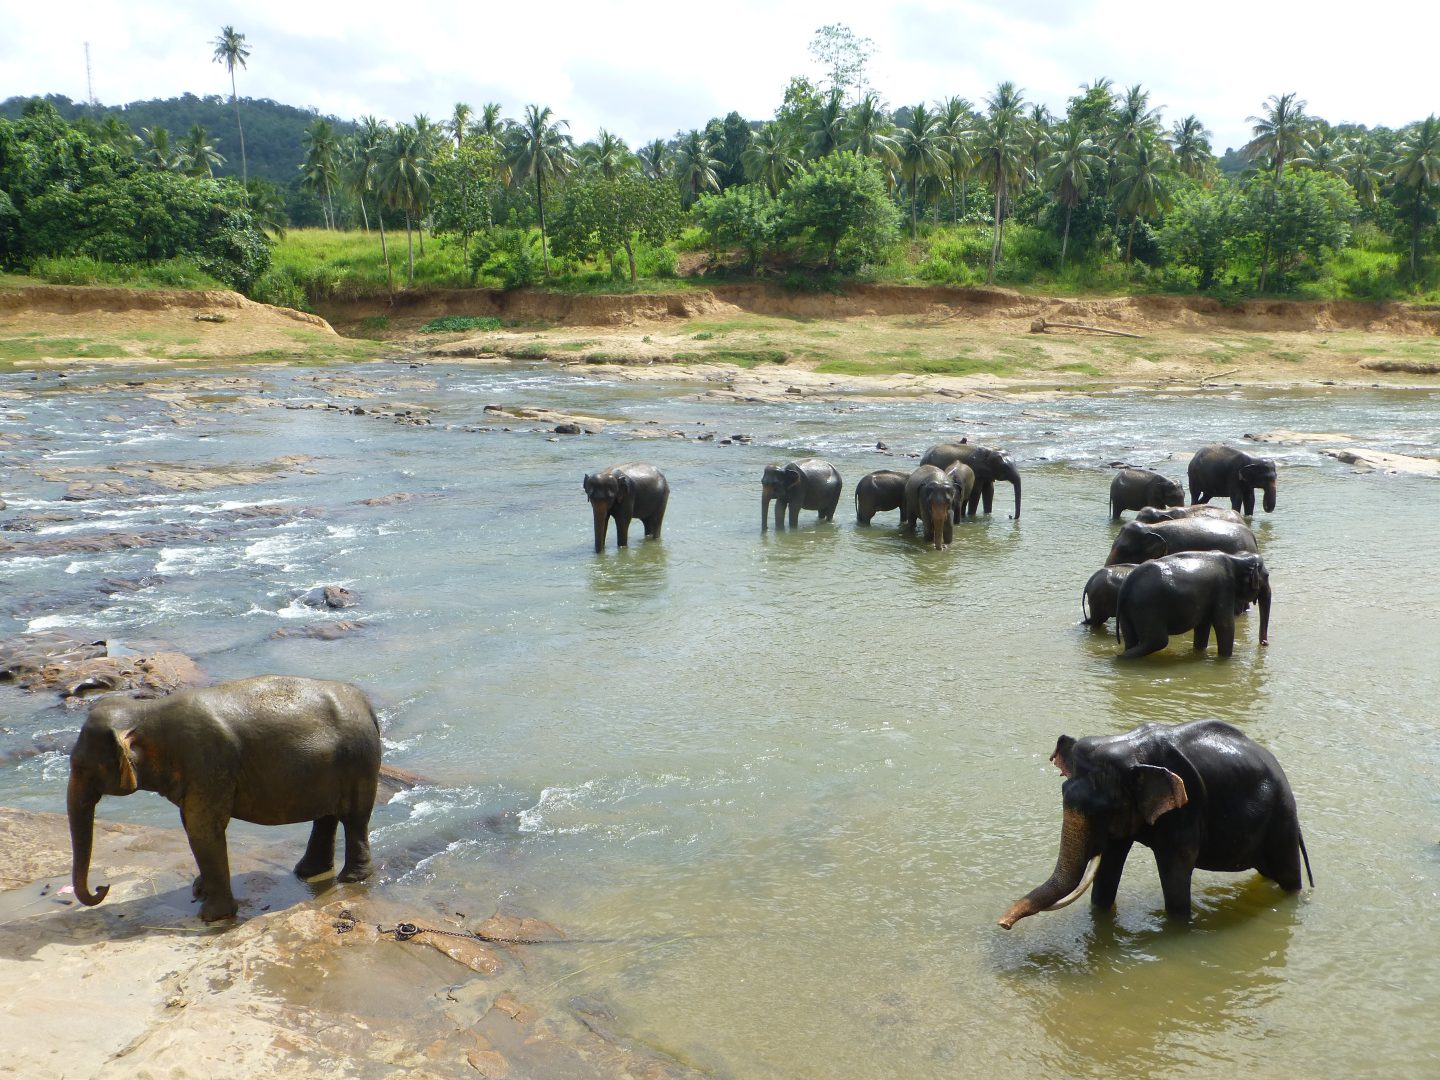 7 NIGHTS IN SRI LANKA: THE HIGHS AND LOWS